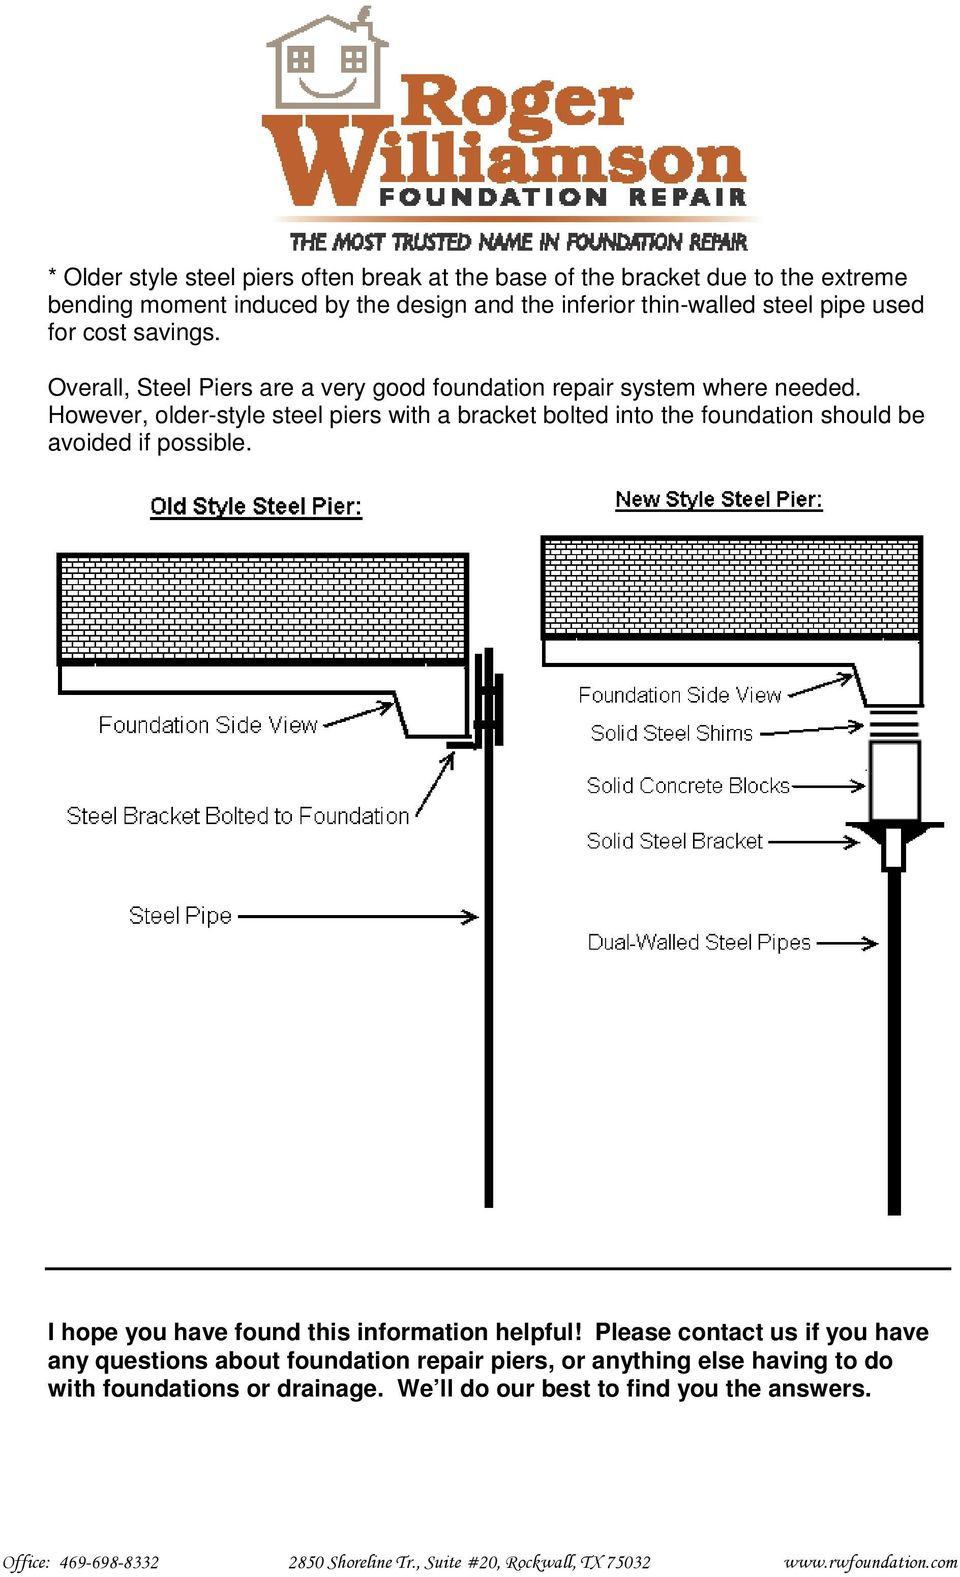 However, older-style steel piers with a bracket bolted into the foundation should be avoided if possible.